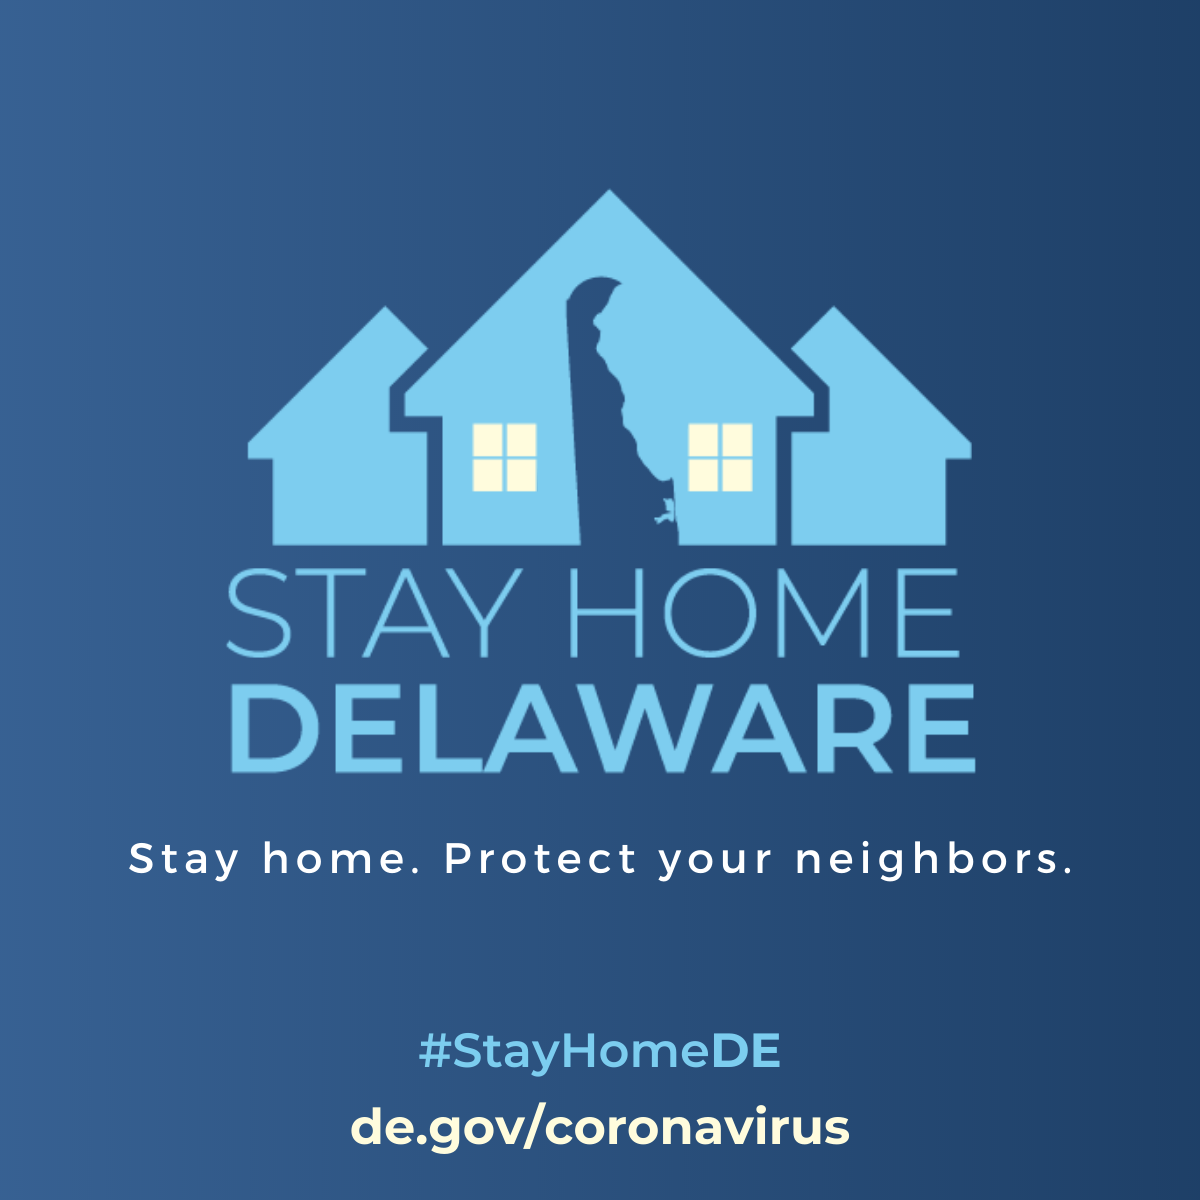 Stay home. Protect your neighbors.